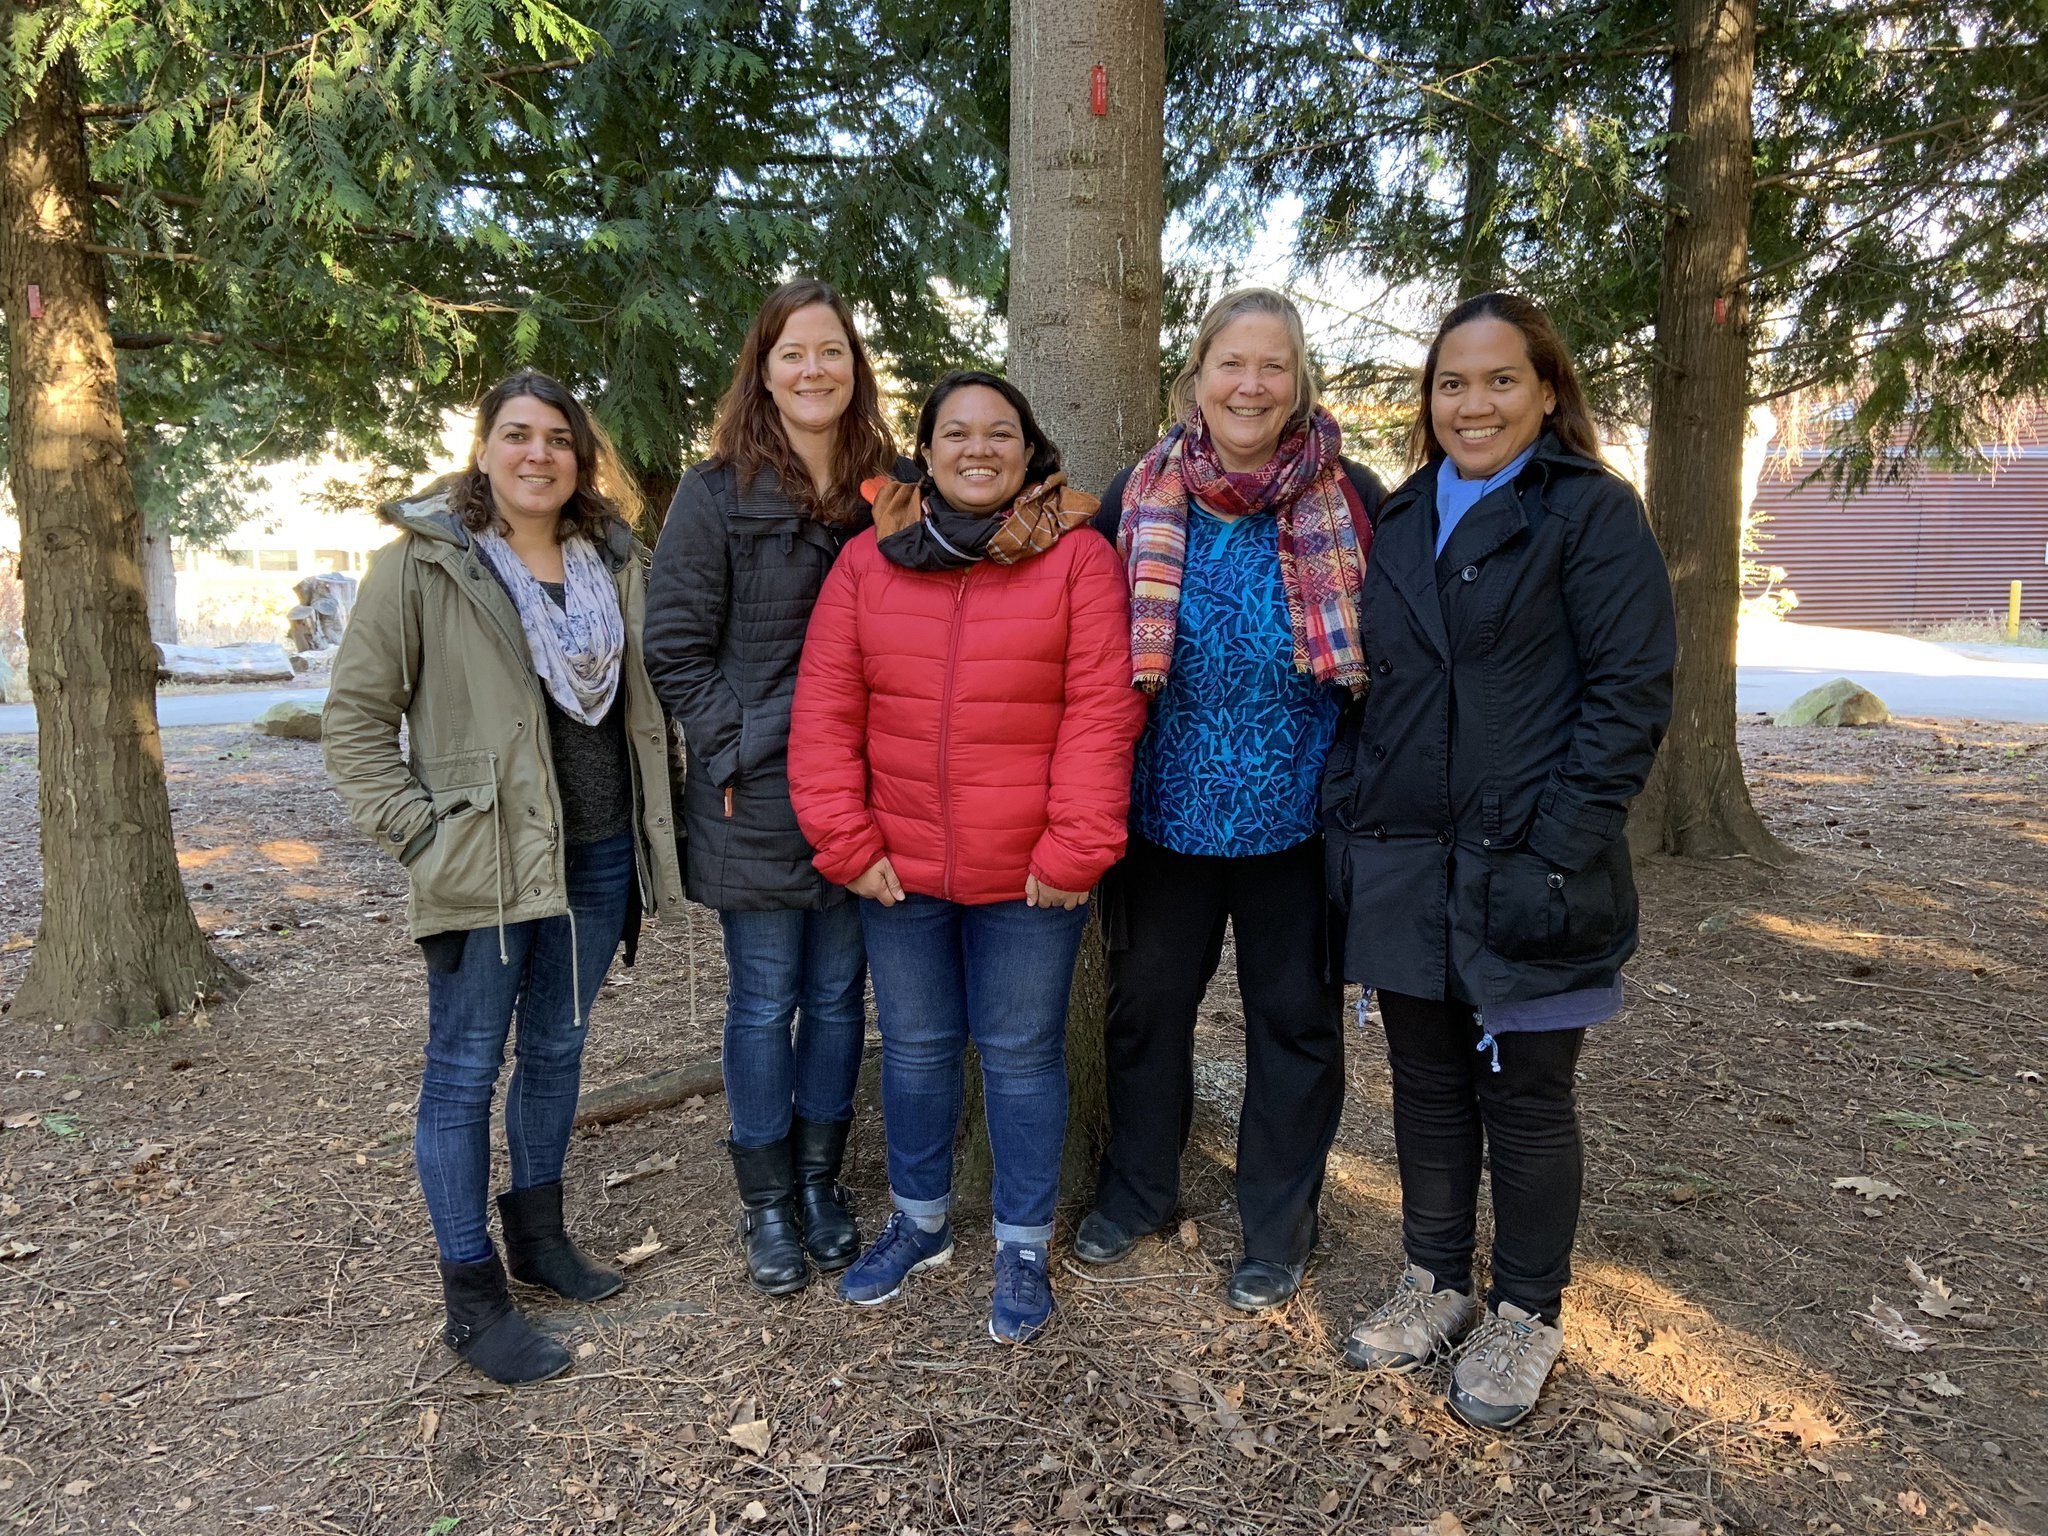 The research team: Lily Stanton, Sarah Foster, Angie Nellas, Amanda Vincent and Myrtle Arias.